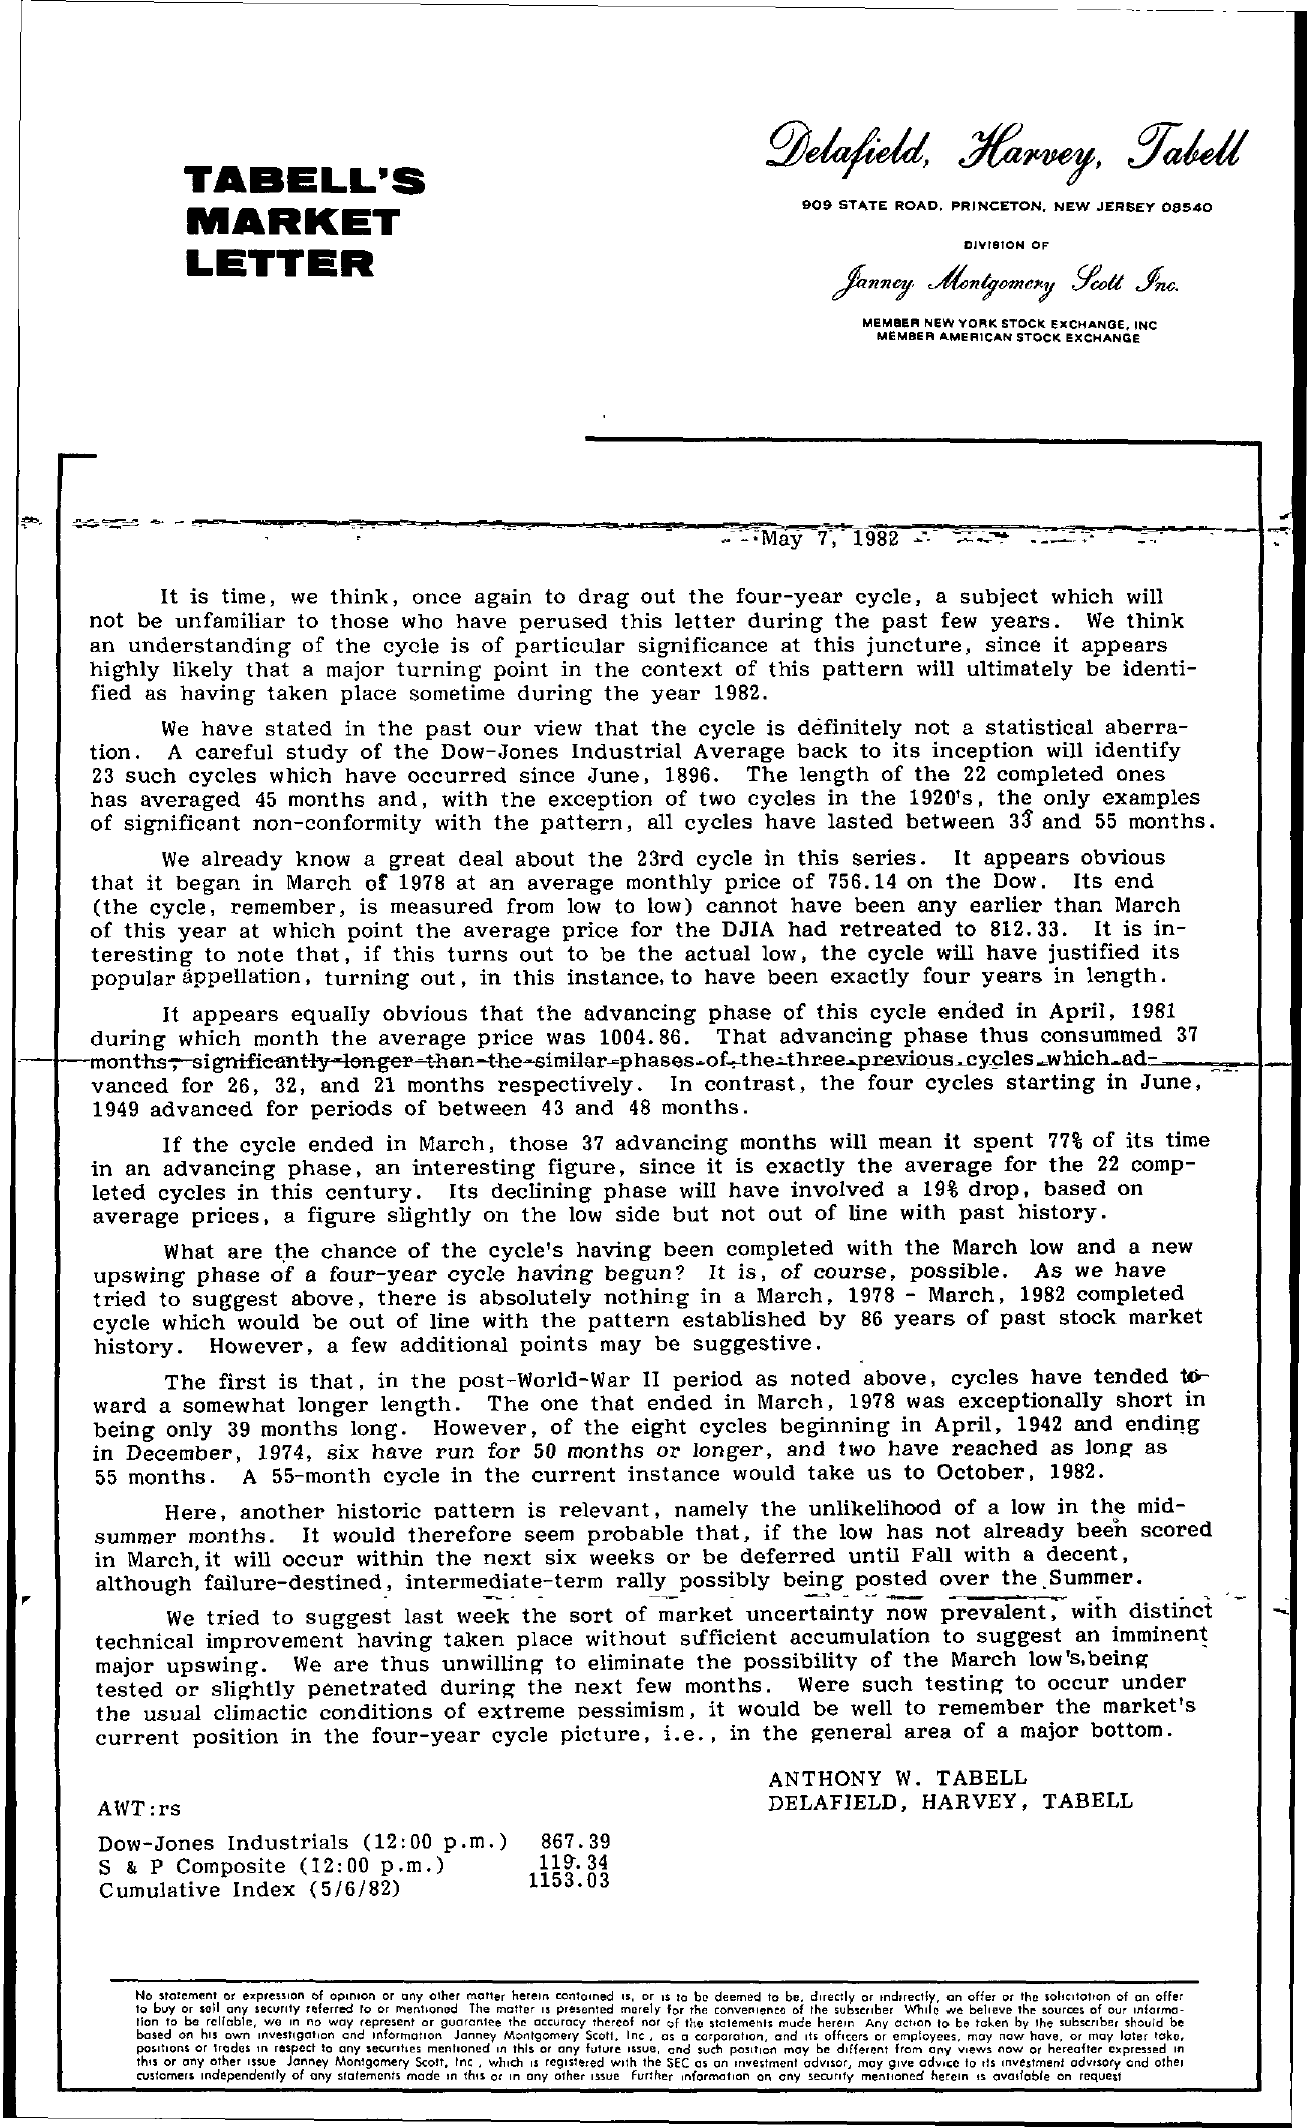 Tabell's Market Letter - May 07, 1982